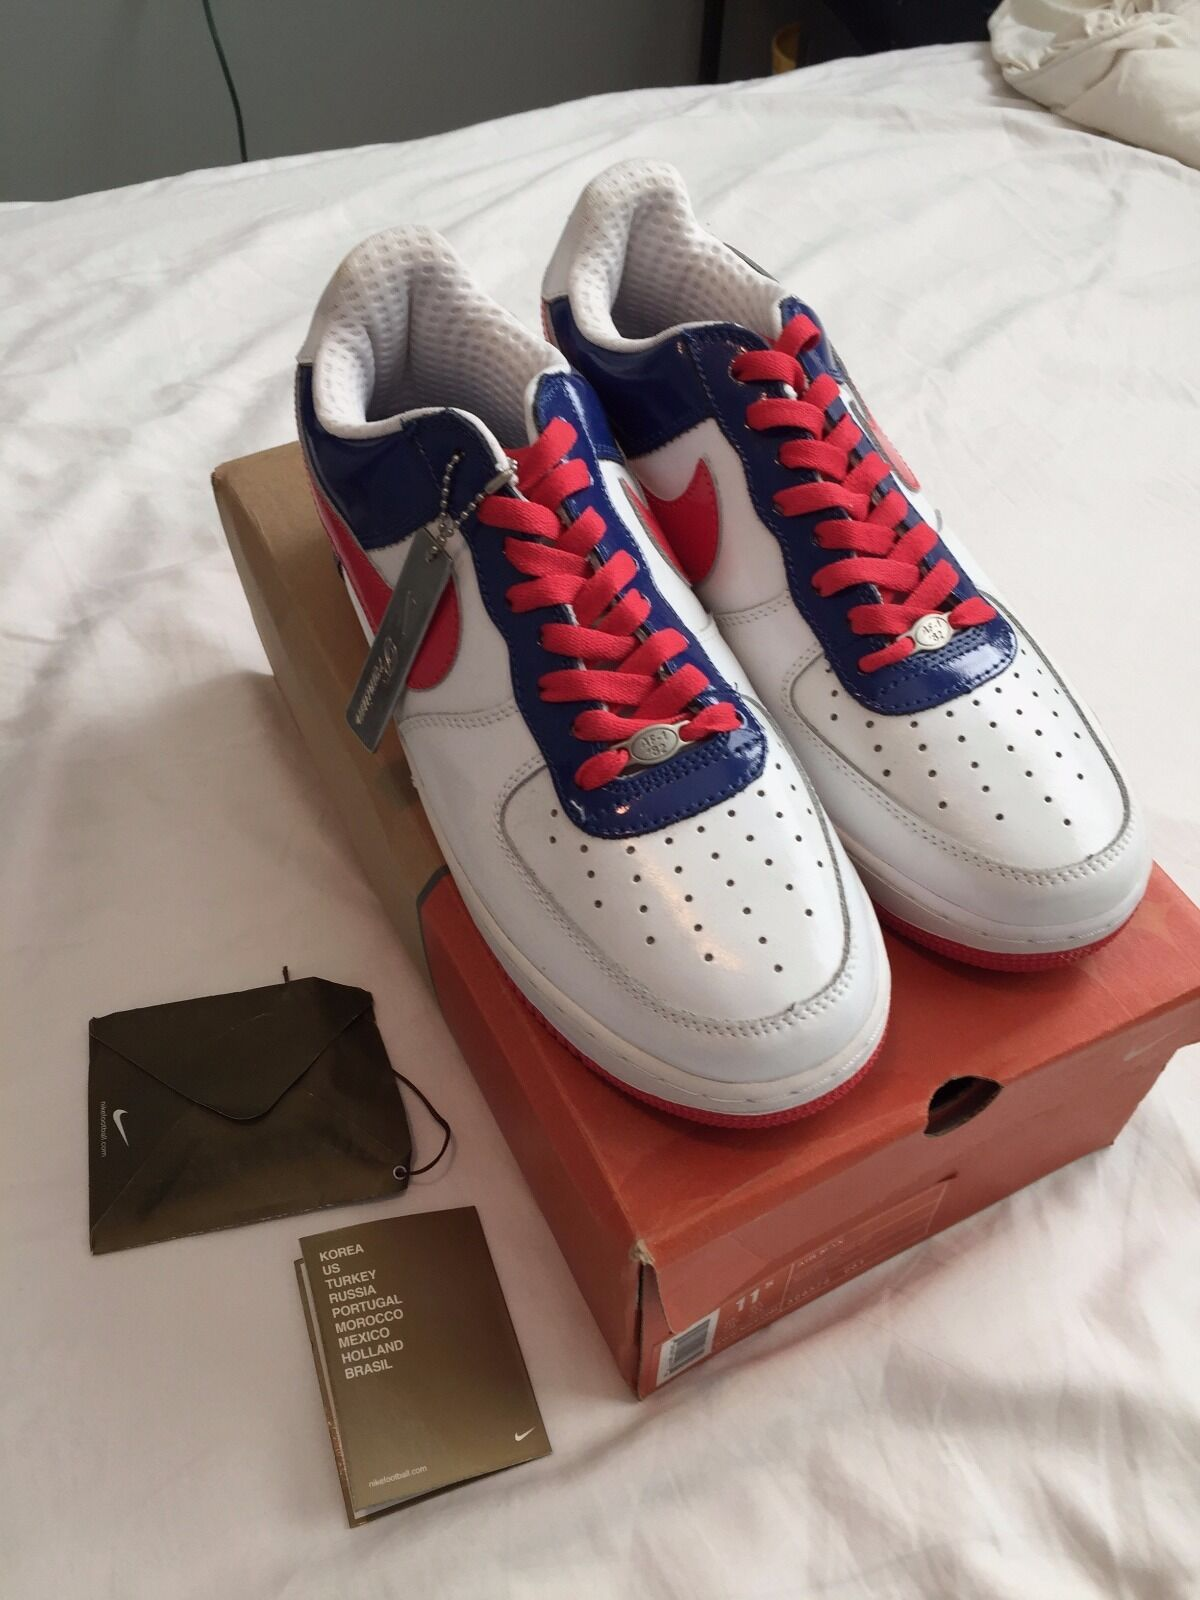 New Nike Air Force 1 Premium SOUTH KOREA WORLD CUP WHITE ROYAL blueeE RED 11